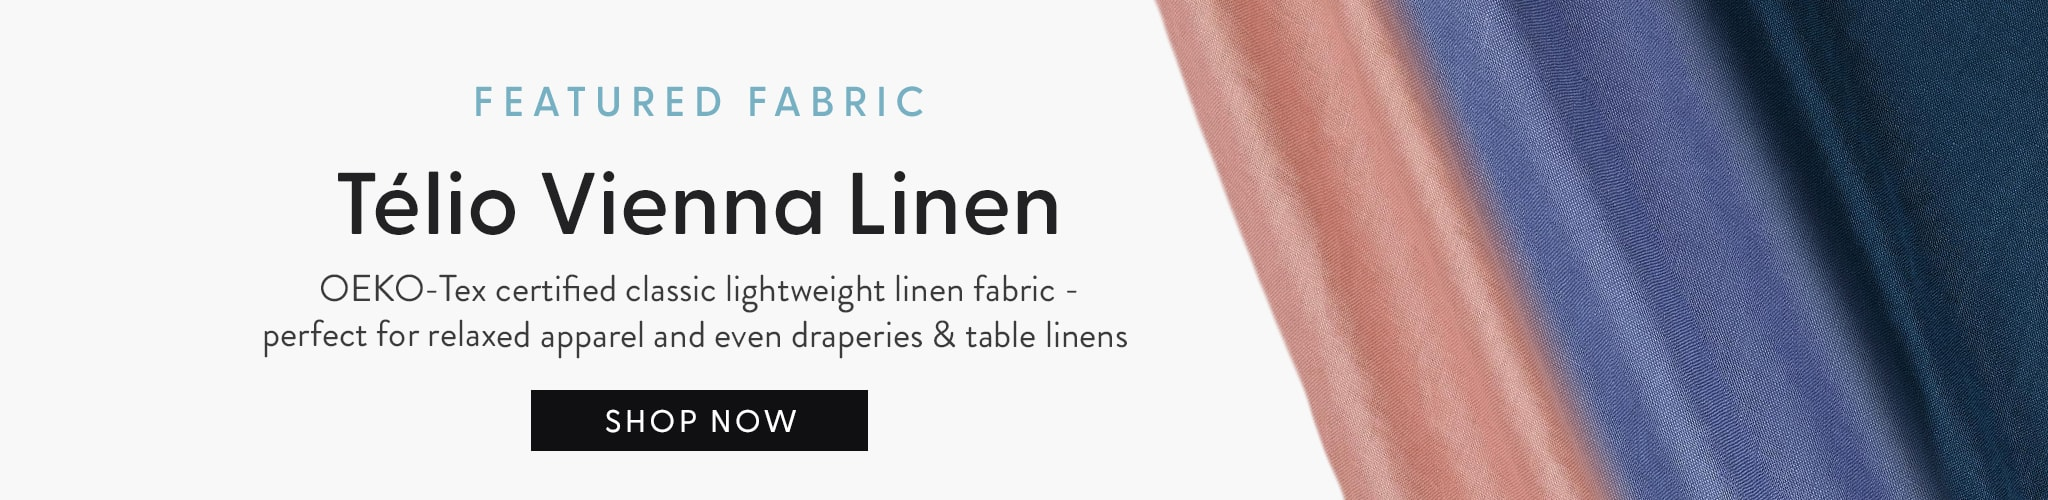 Featured Fabric. Telio Vienna Linen OKEO-tex certified classic lightweight linen fabric-- perfect for relaxed apparel and even draperies and table linen.